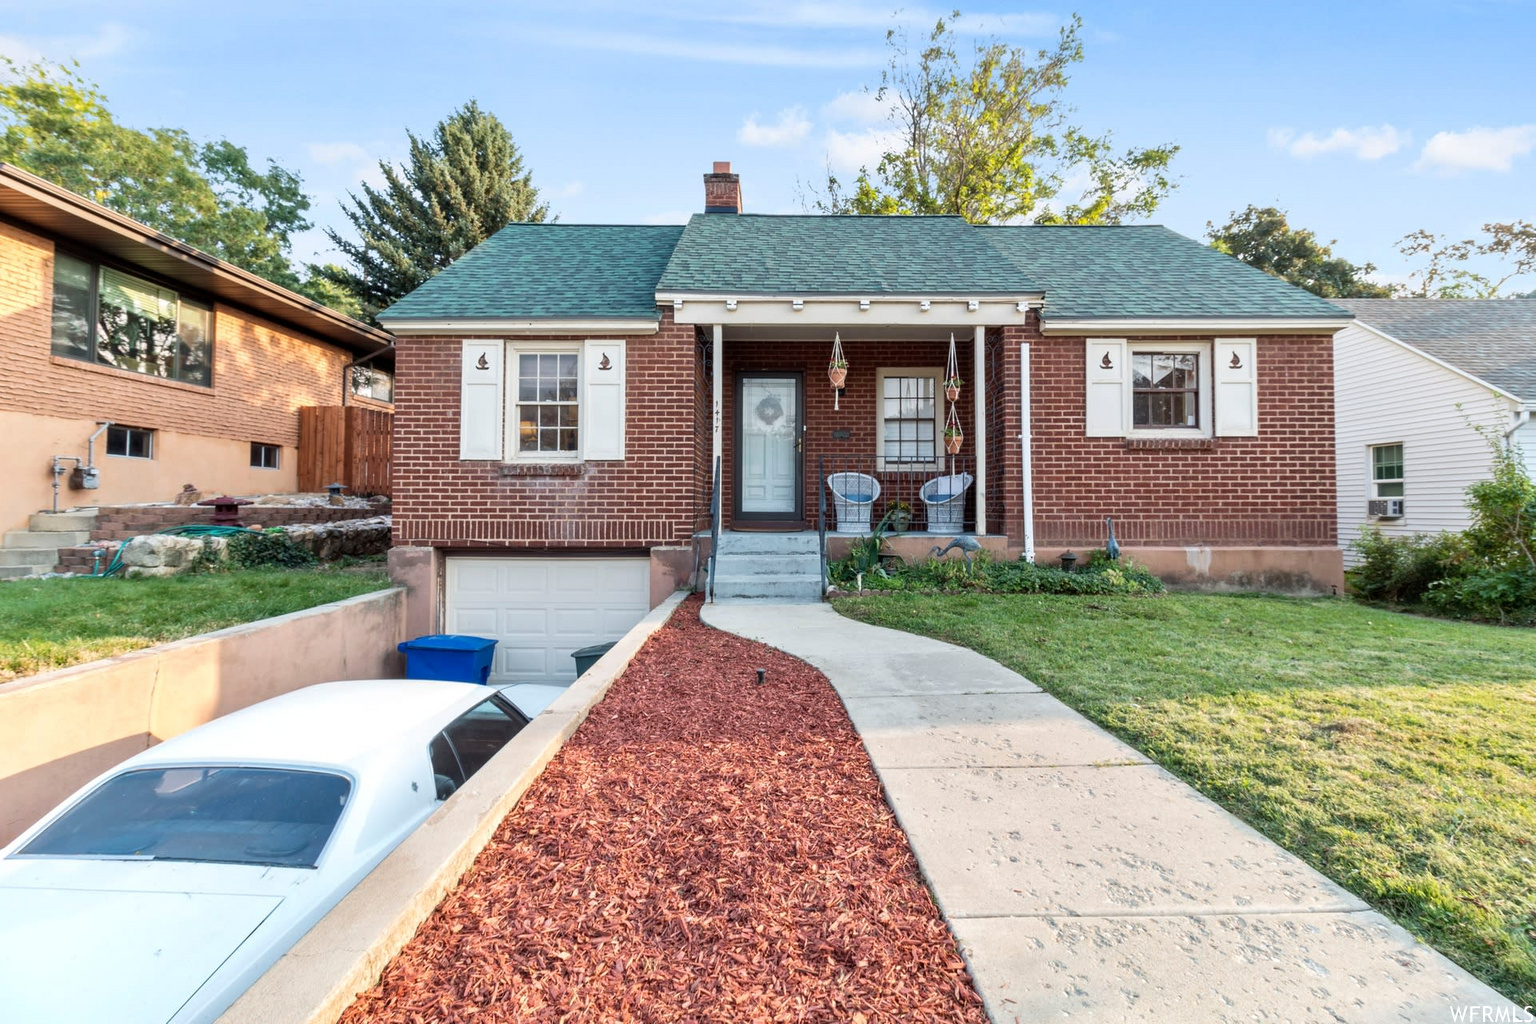 1417 E 28TH ST, Ogden UT 84403